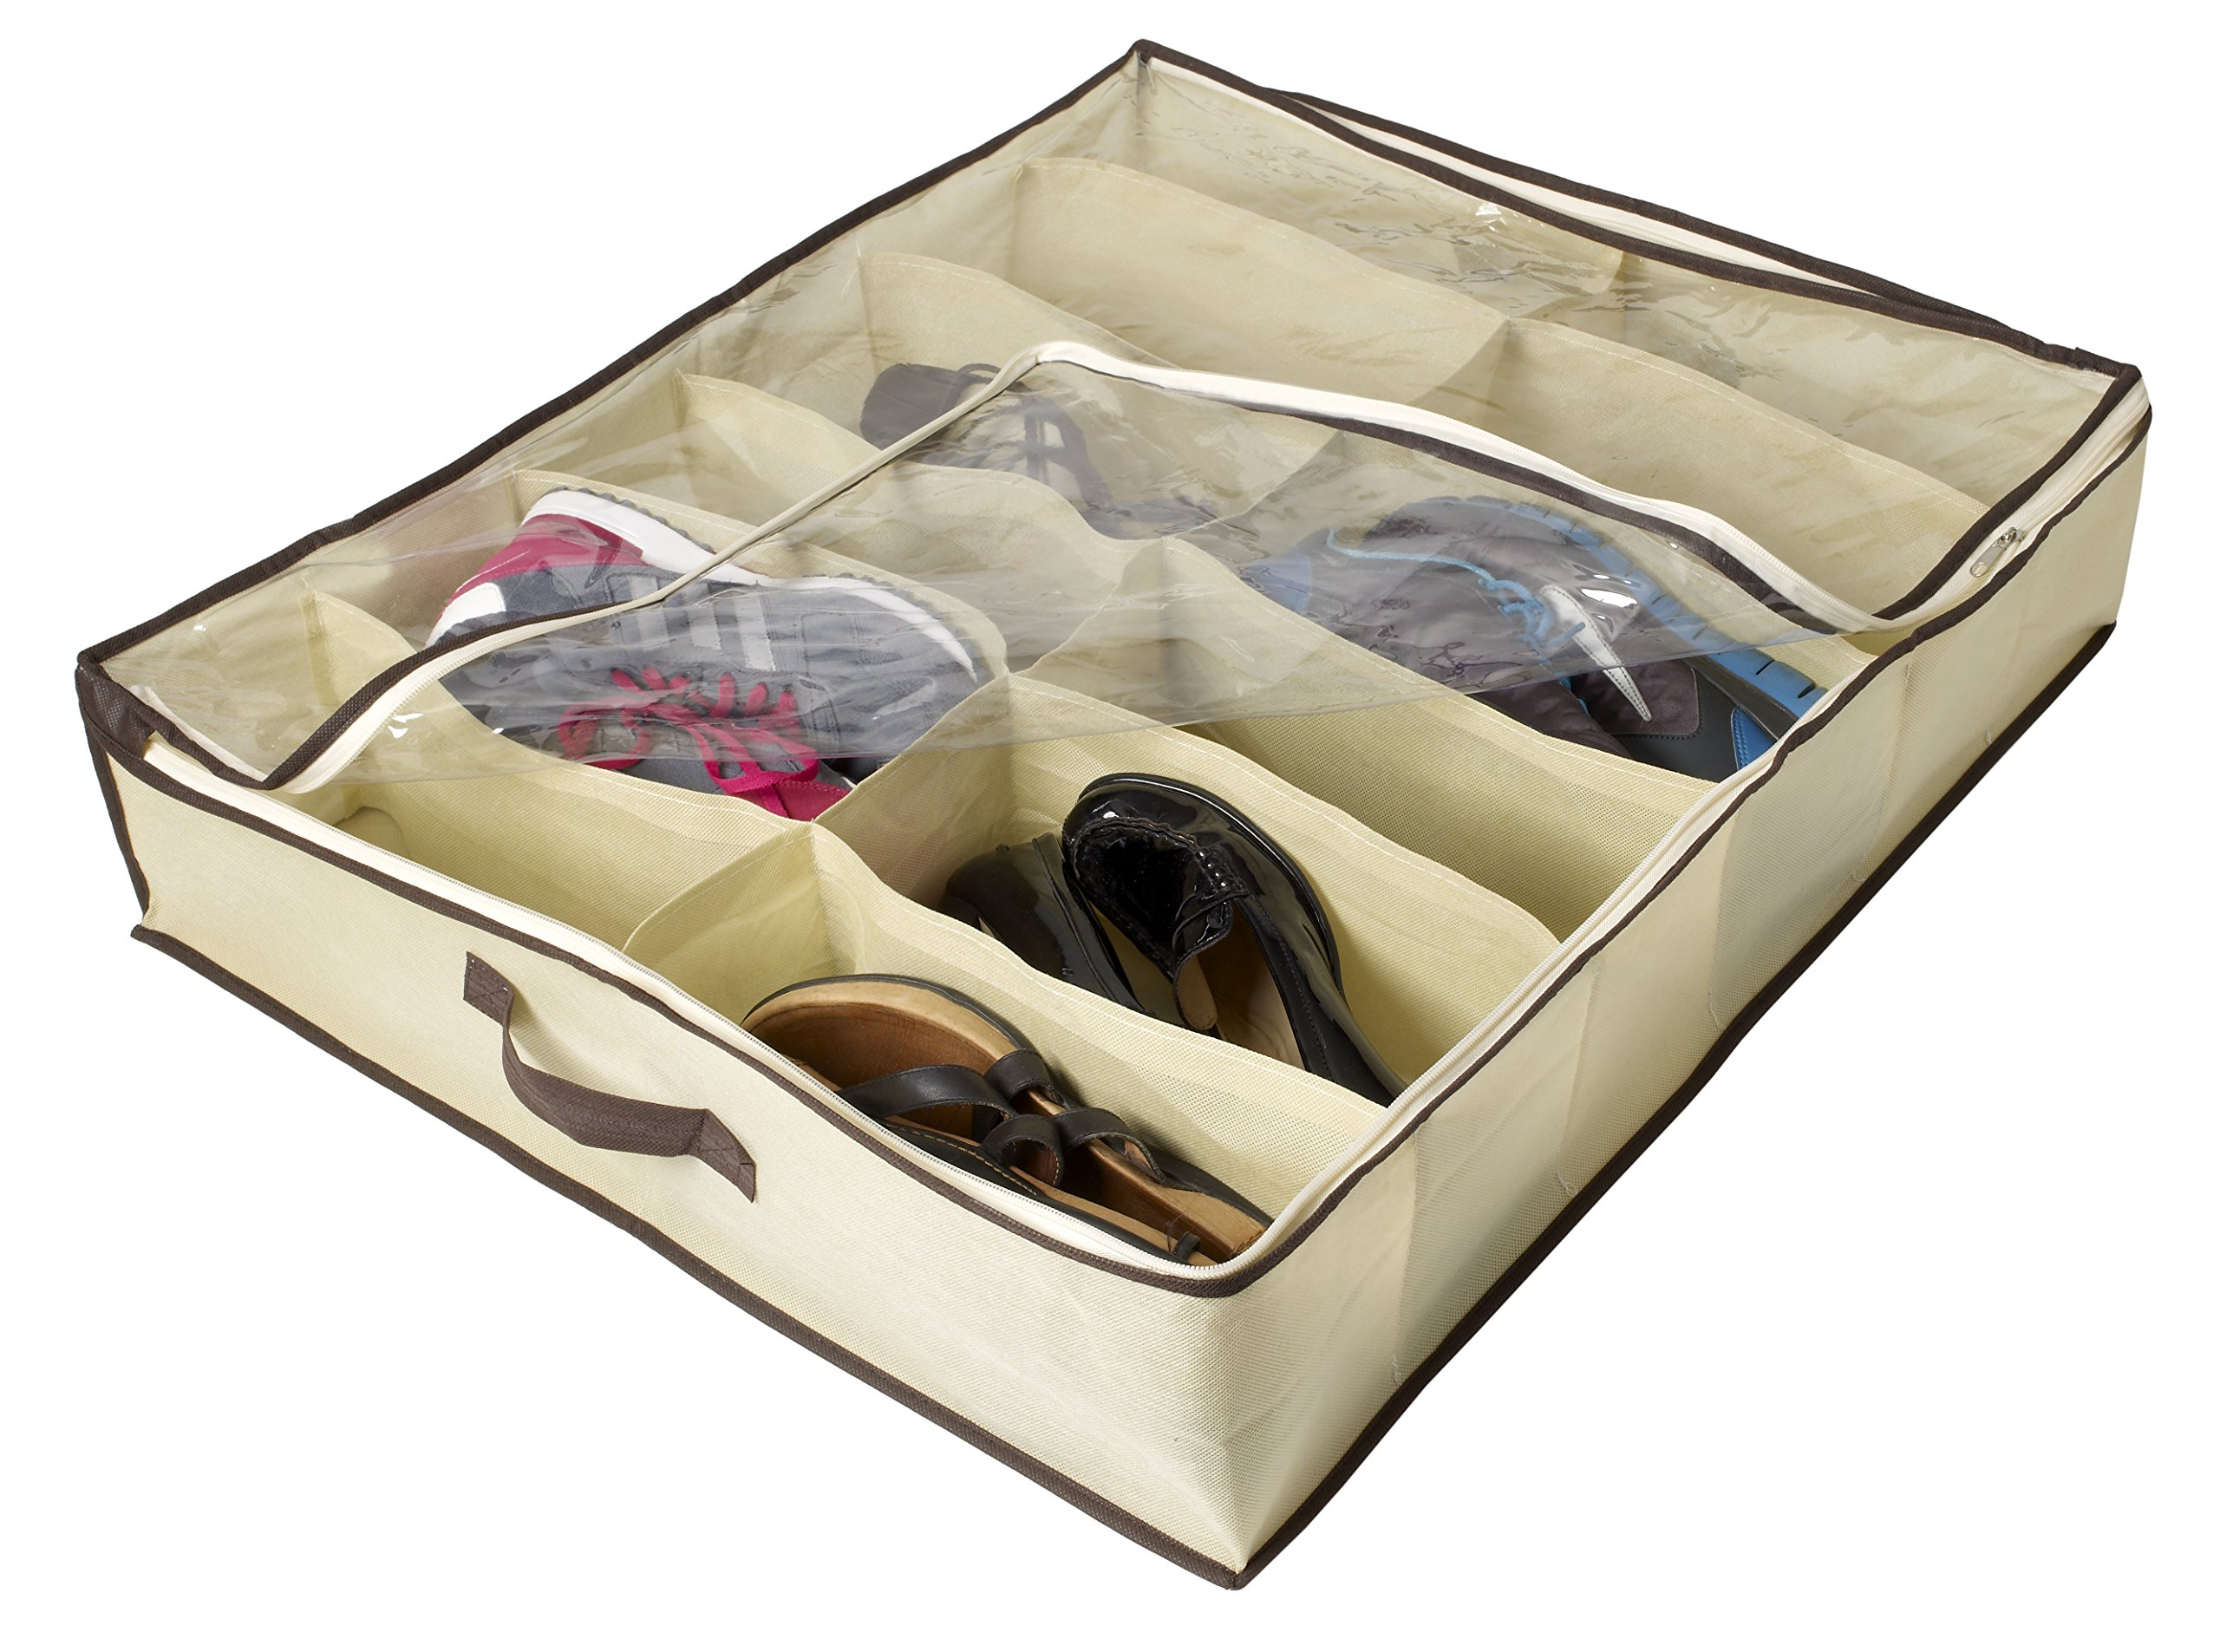 Ziz Home Under Bed Shoe Organizer for Kids and Adults (12 Pairs) - Underbed Shoes Closet Storage Solution - Made of Breathable Materials with Front Zippered Closure - Easy to Assemble by Ziz Home (Image #3)